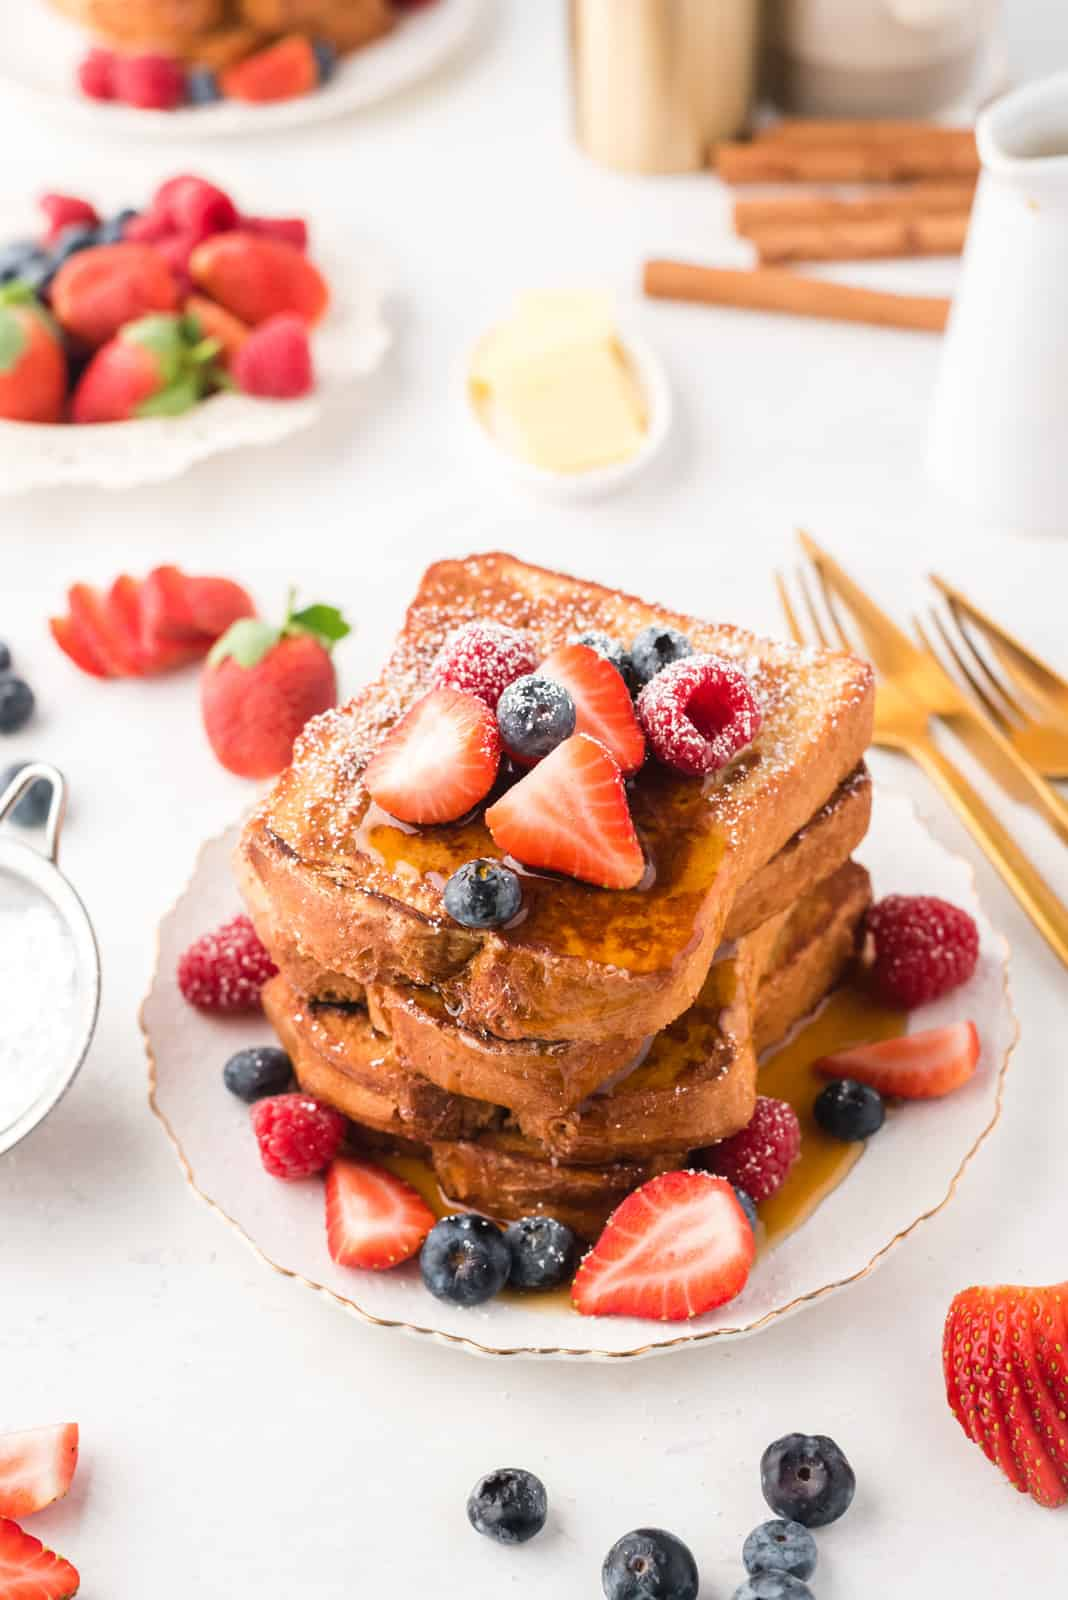 Plate of syrup covered Stacked French Toast Recipe with fruit